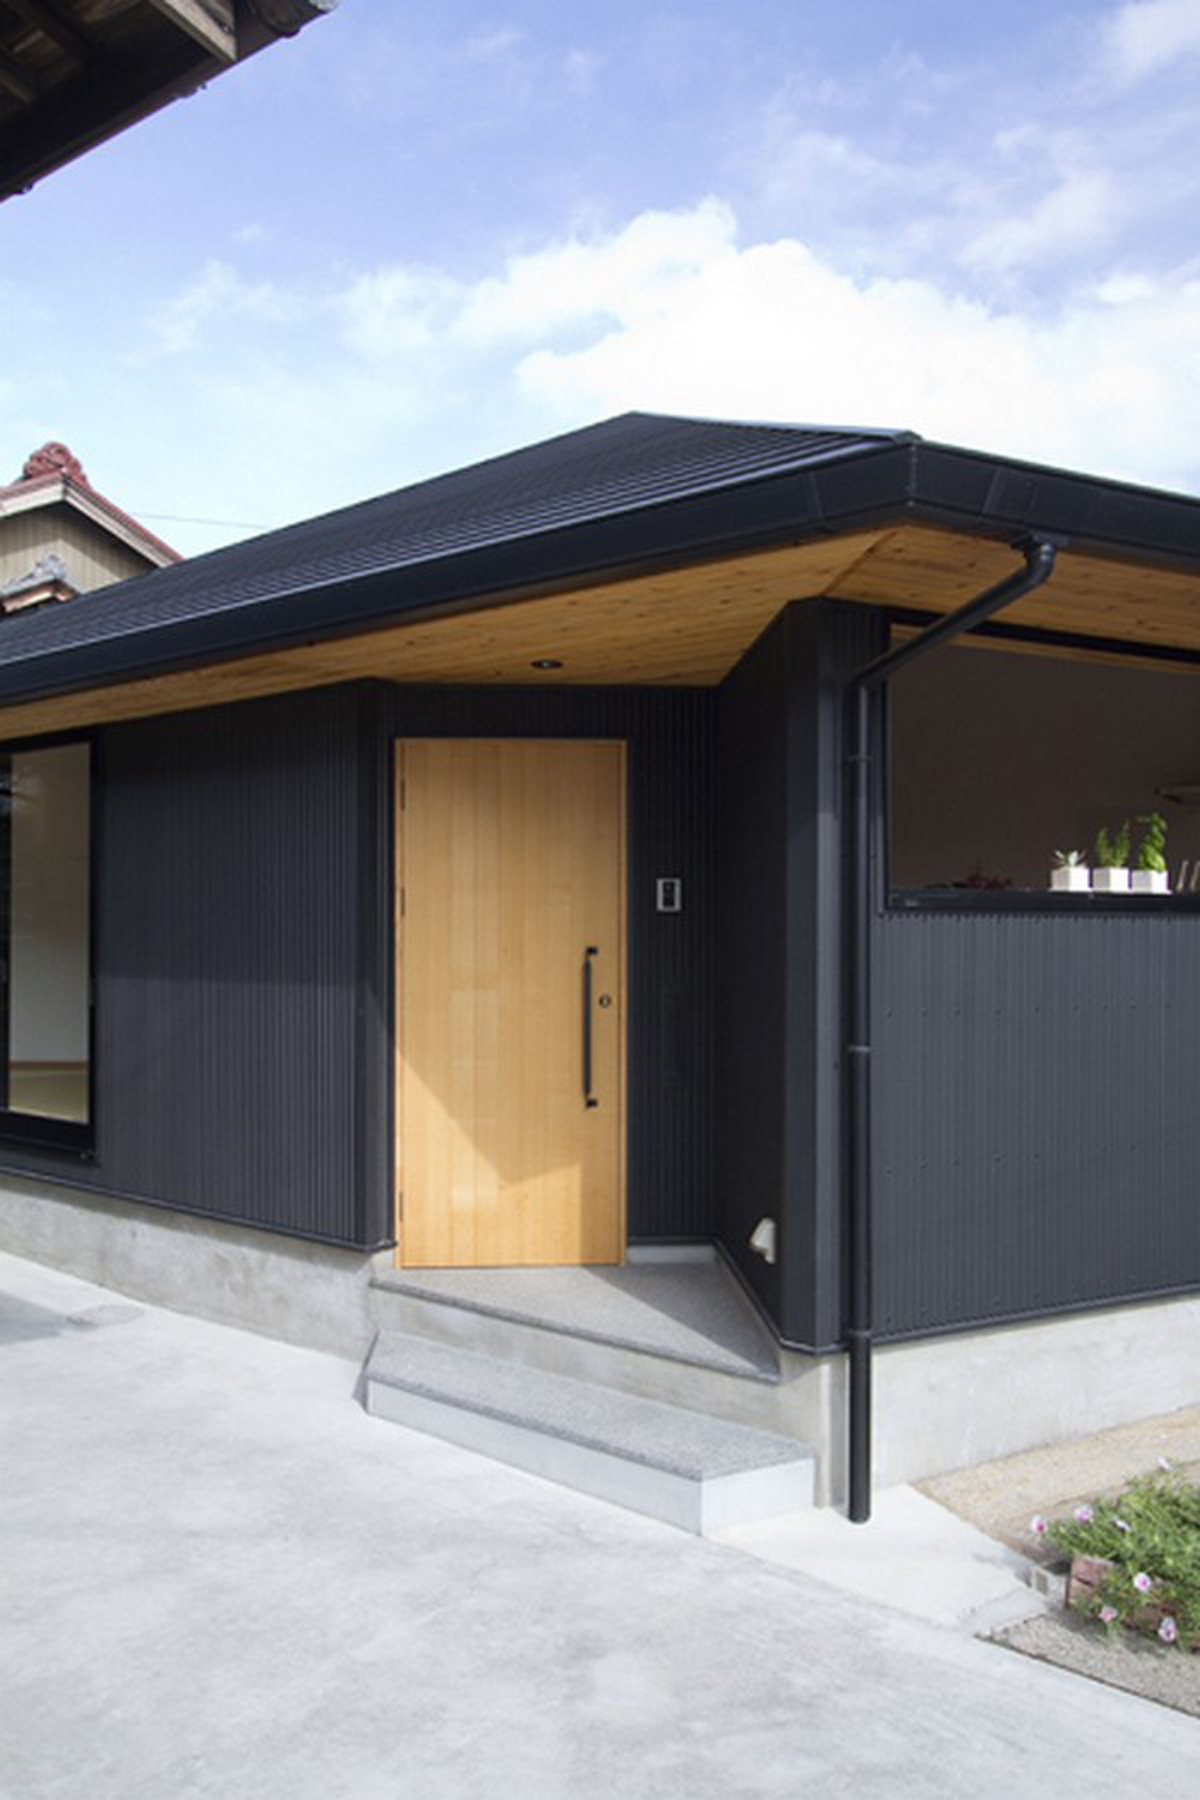 Minimalist japanese house designs for Japanese minimalist small house design